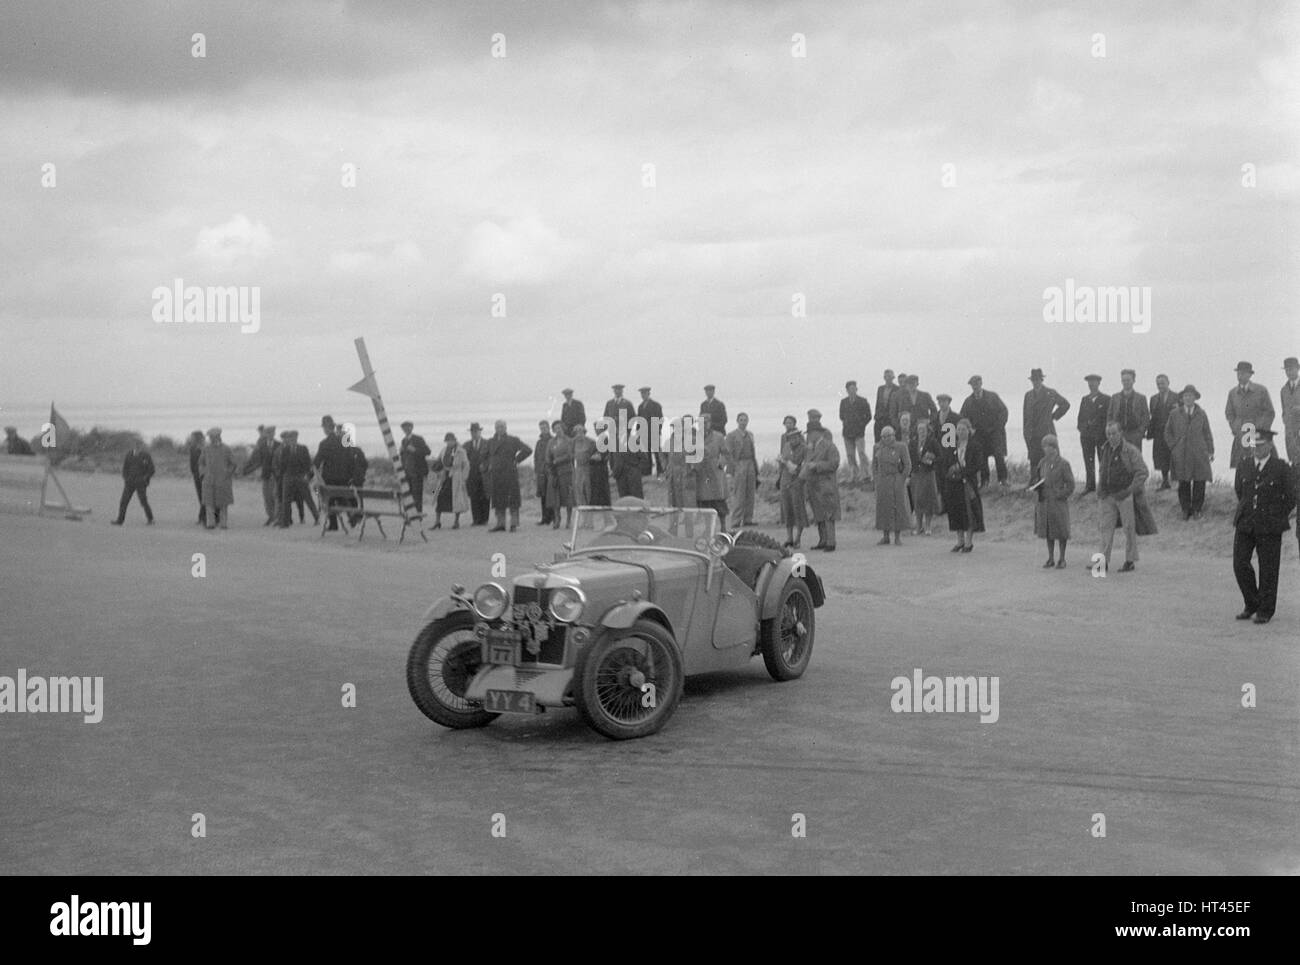 MG J2 of AWF Smith competing in the RSAC Scottish Rally, 1934. Artist: Bill Brunell. - Stock Image